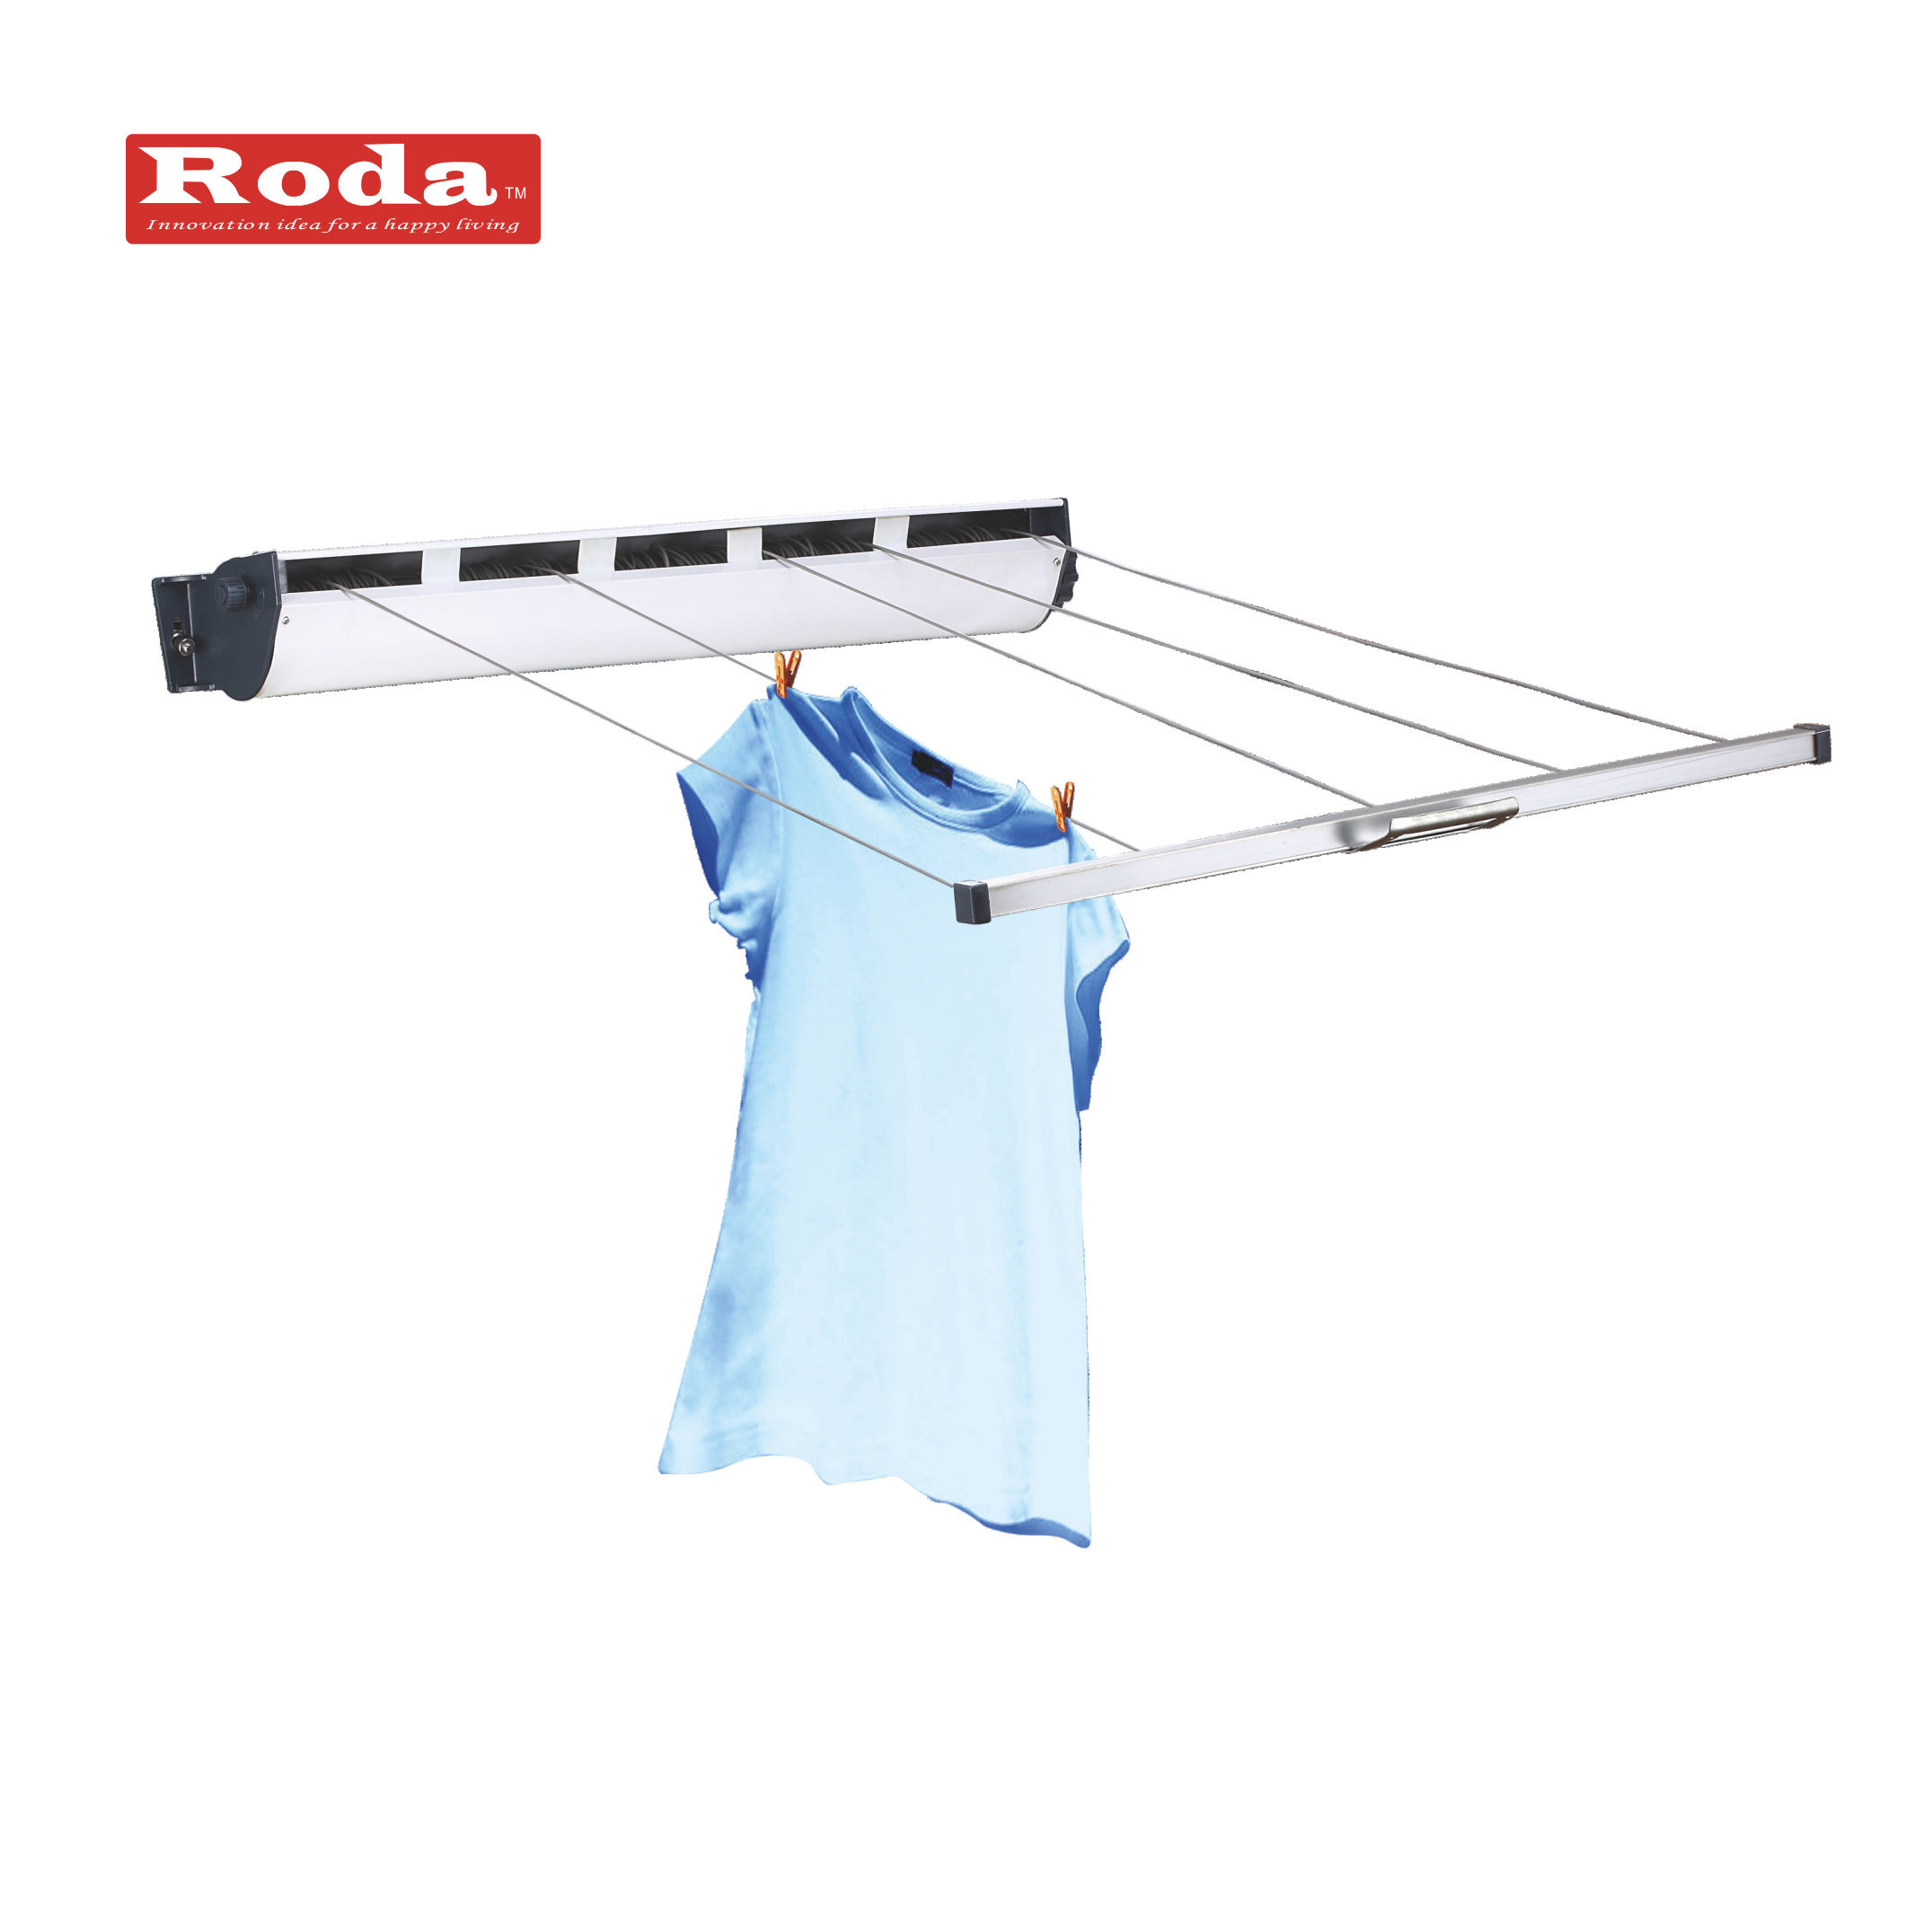 2019 hot sale outdoor Entry Level Wall Mounted Retractable Clothesline Clothes Drying Rack 5 Line